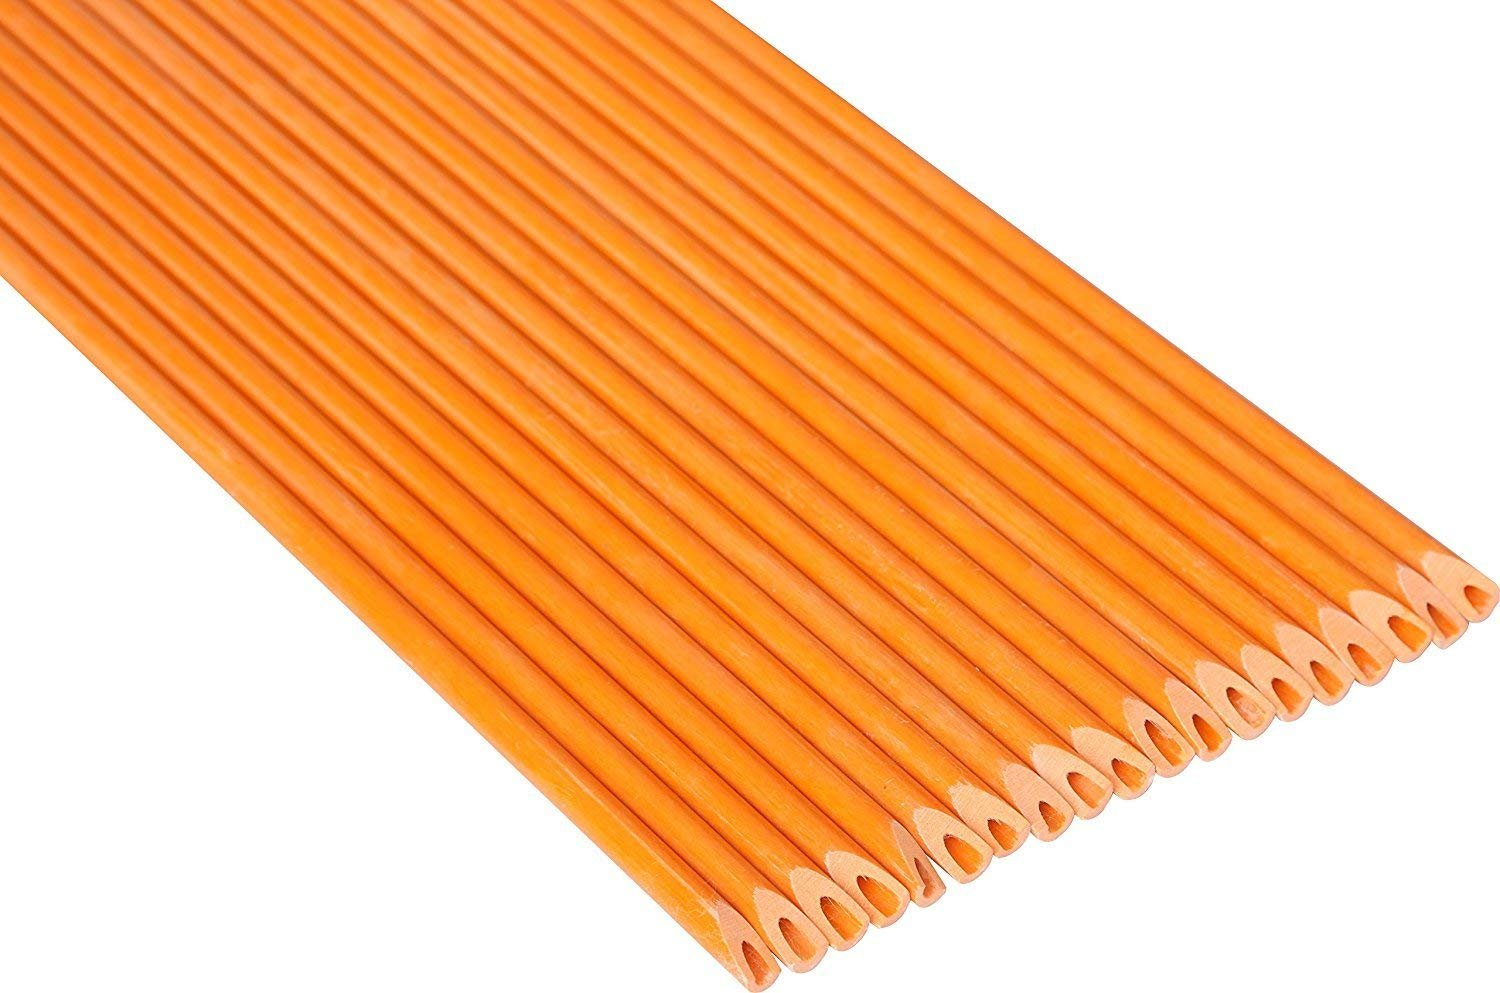 FiberMarker 72Inch Reflective Driveway Markers Driveway Poles Easy Visibility at Night 1//4Inch Diameter Orange,20pack